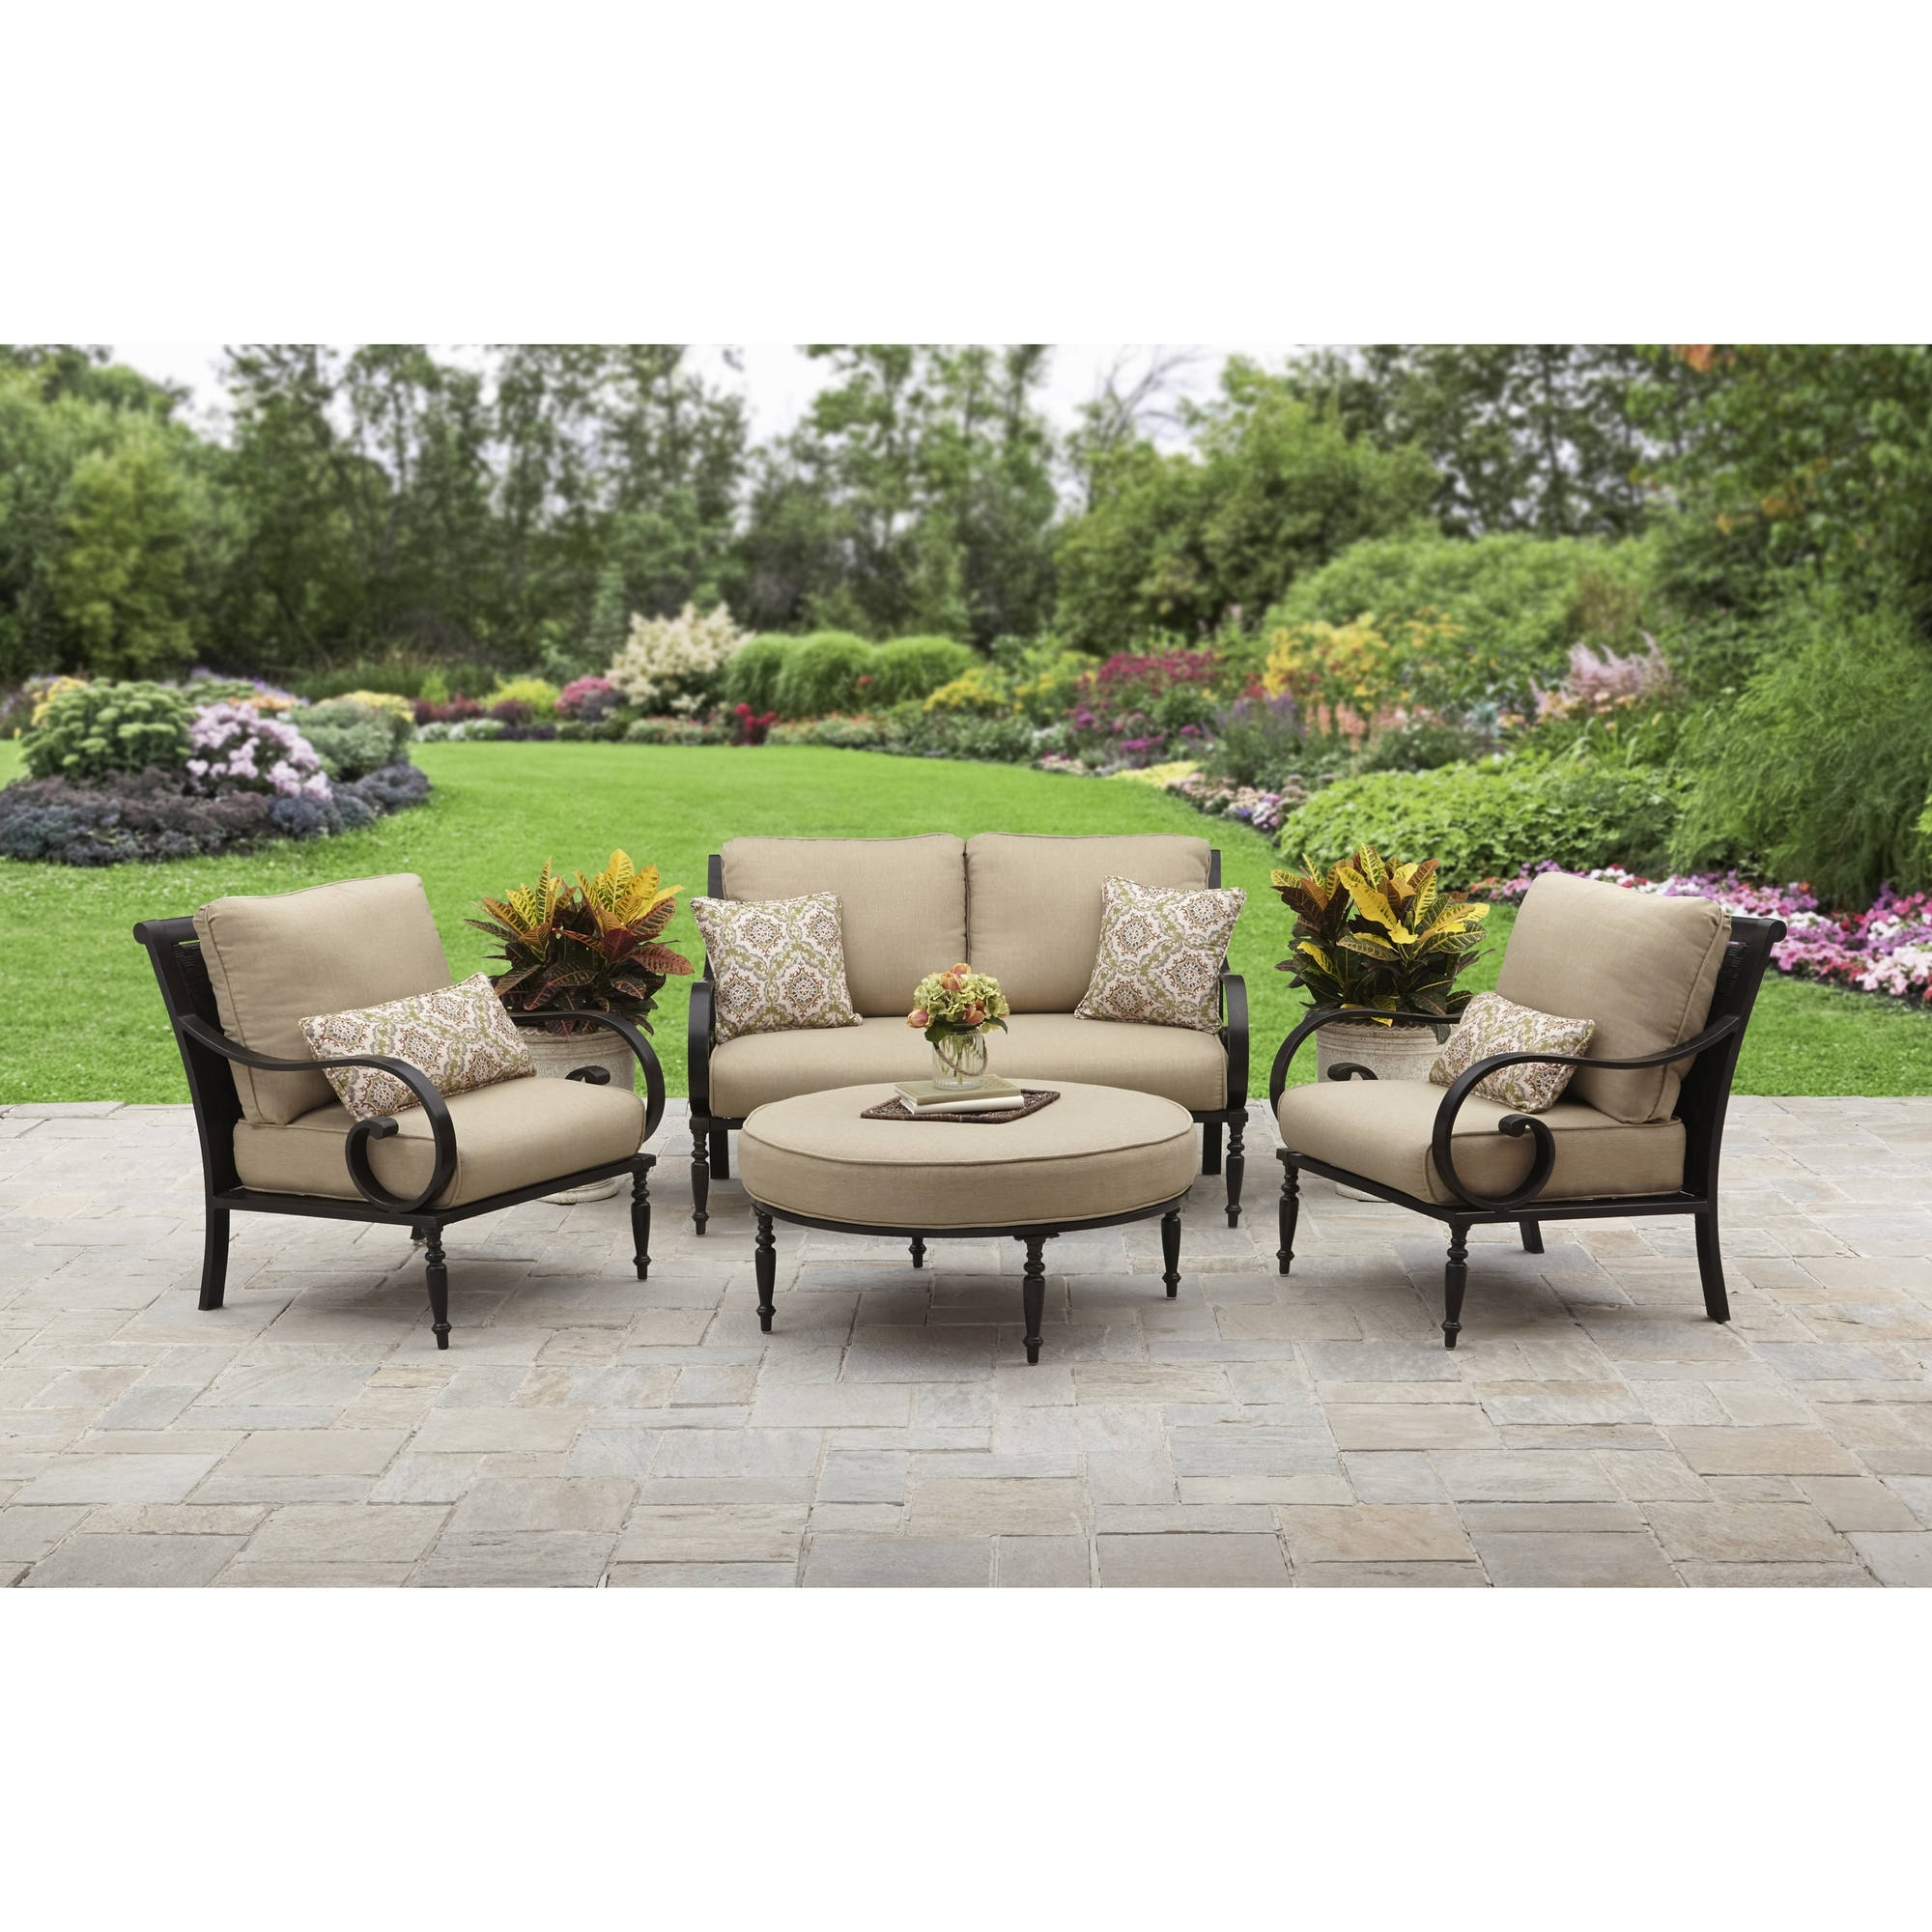 Best And Newest Better Homes And Gardens Camrose Farmhouse Outdoor Conversation Set Intended For Patio Conversation Sets At Walmart (View 7 of 20)